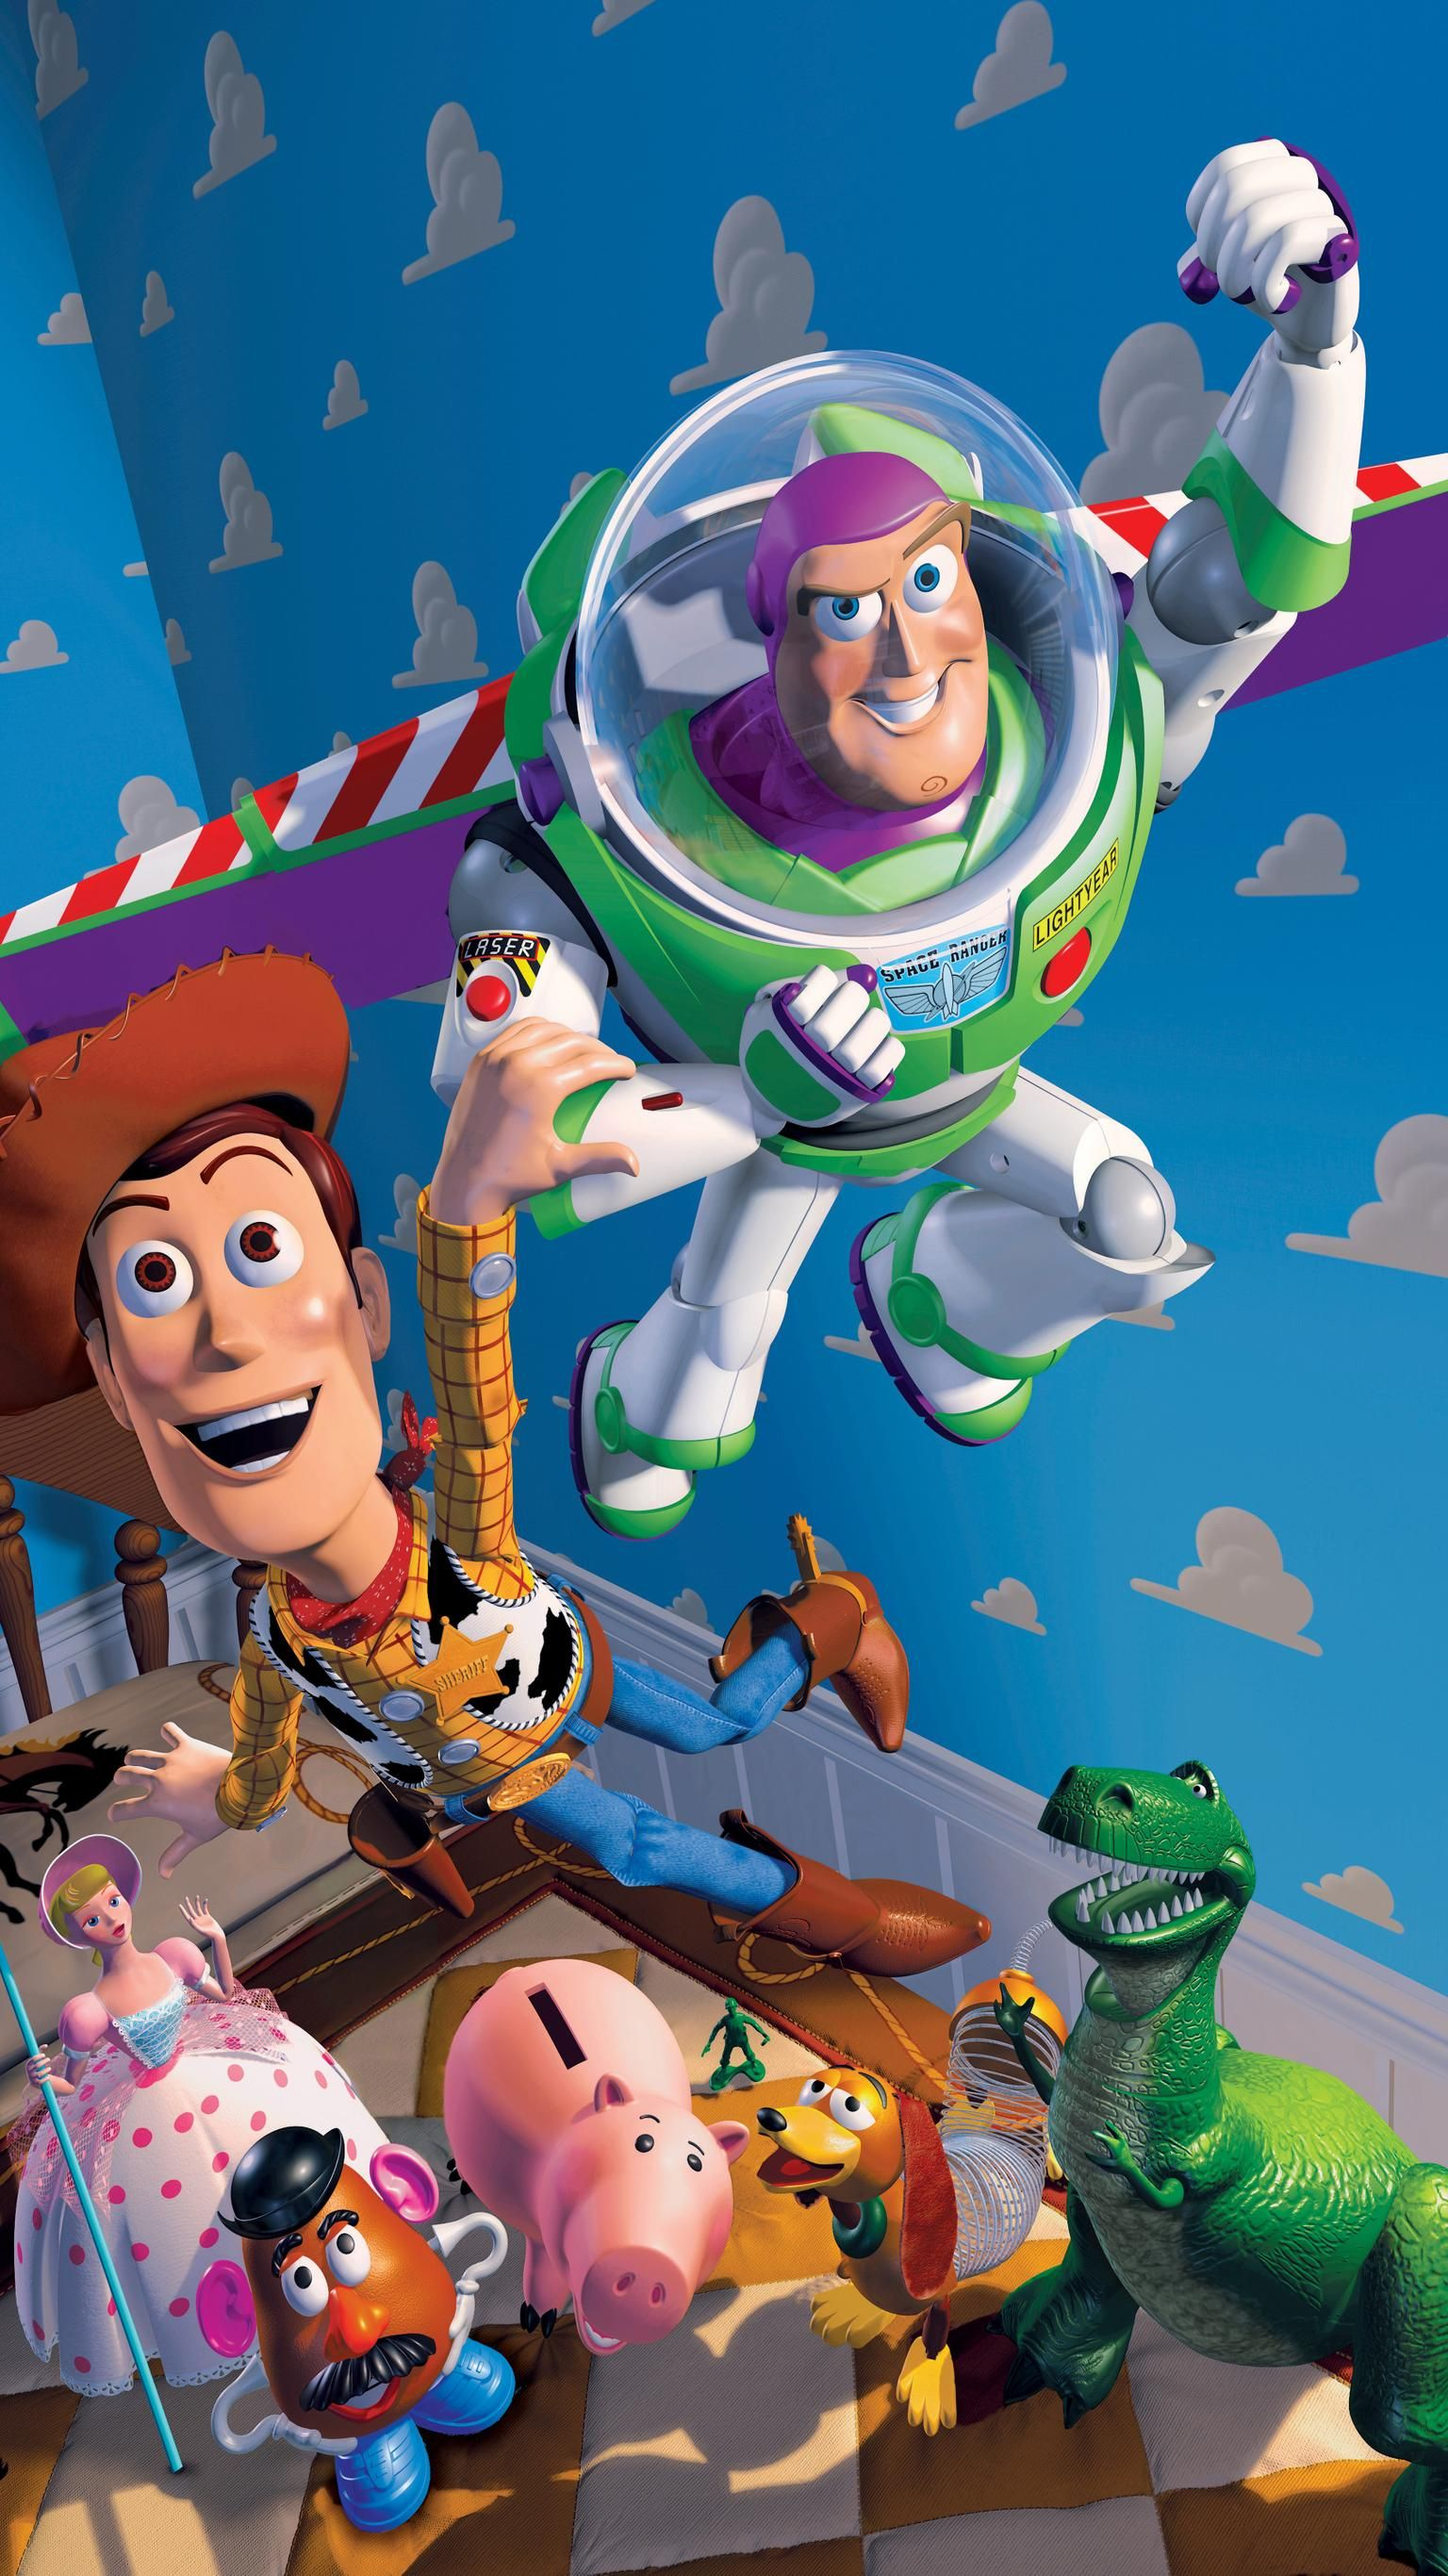 toy story (1995) phone wallpaper | movie | pinterest | wallpaper